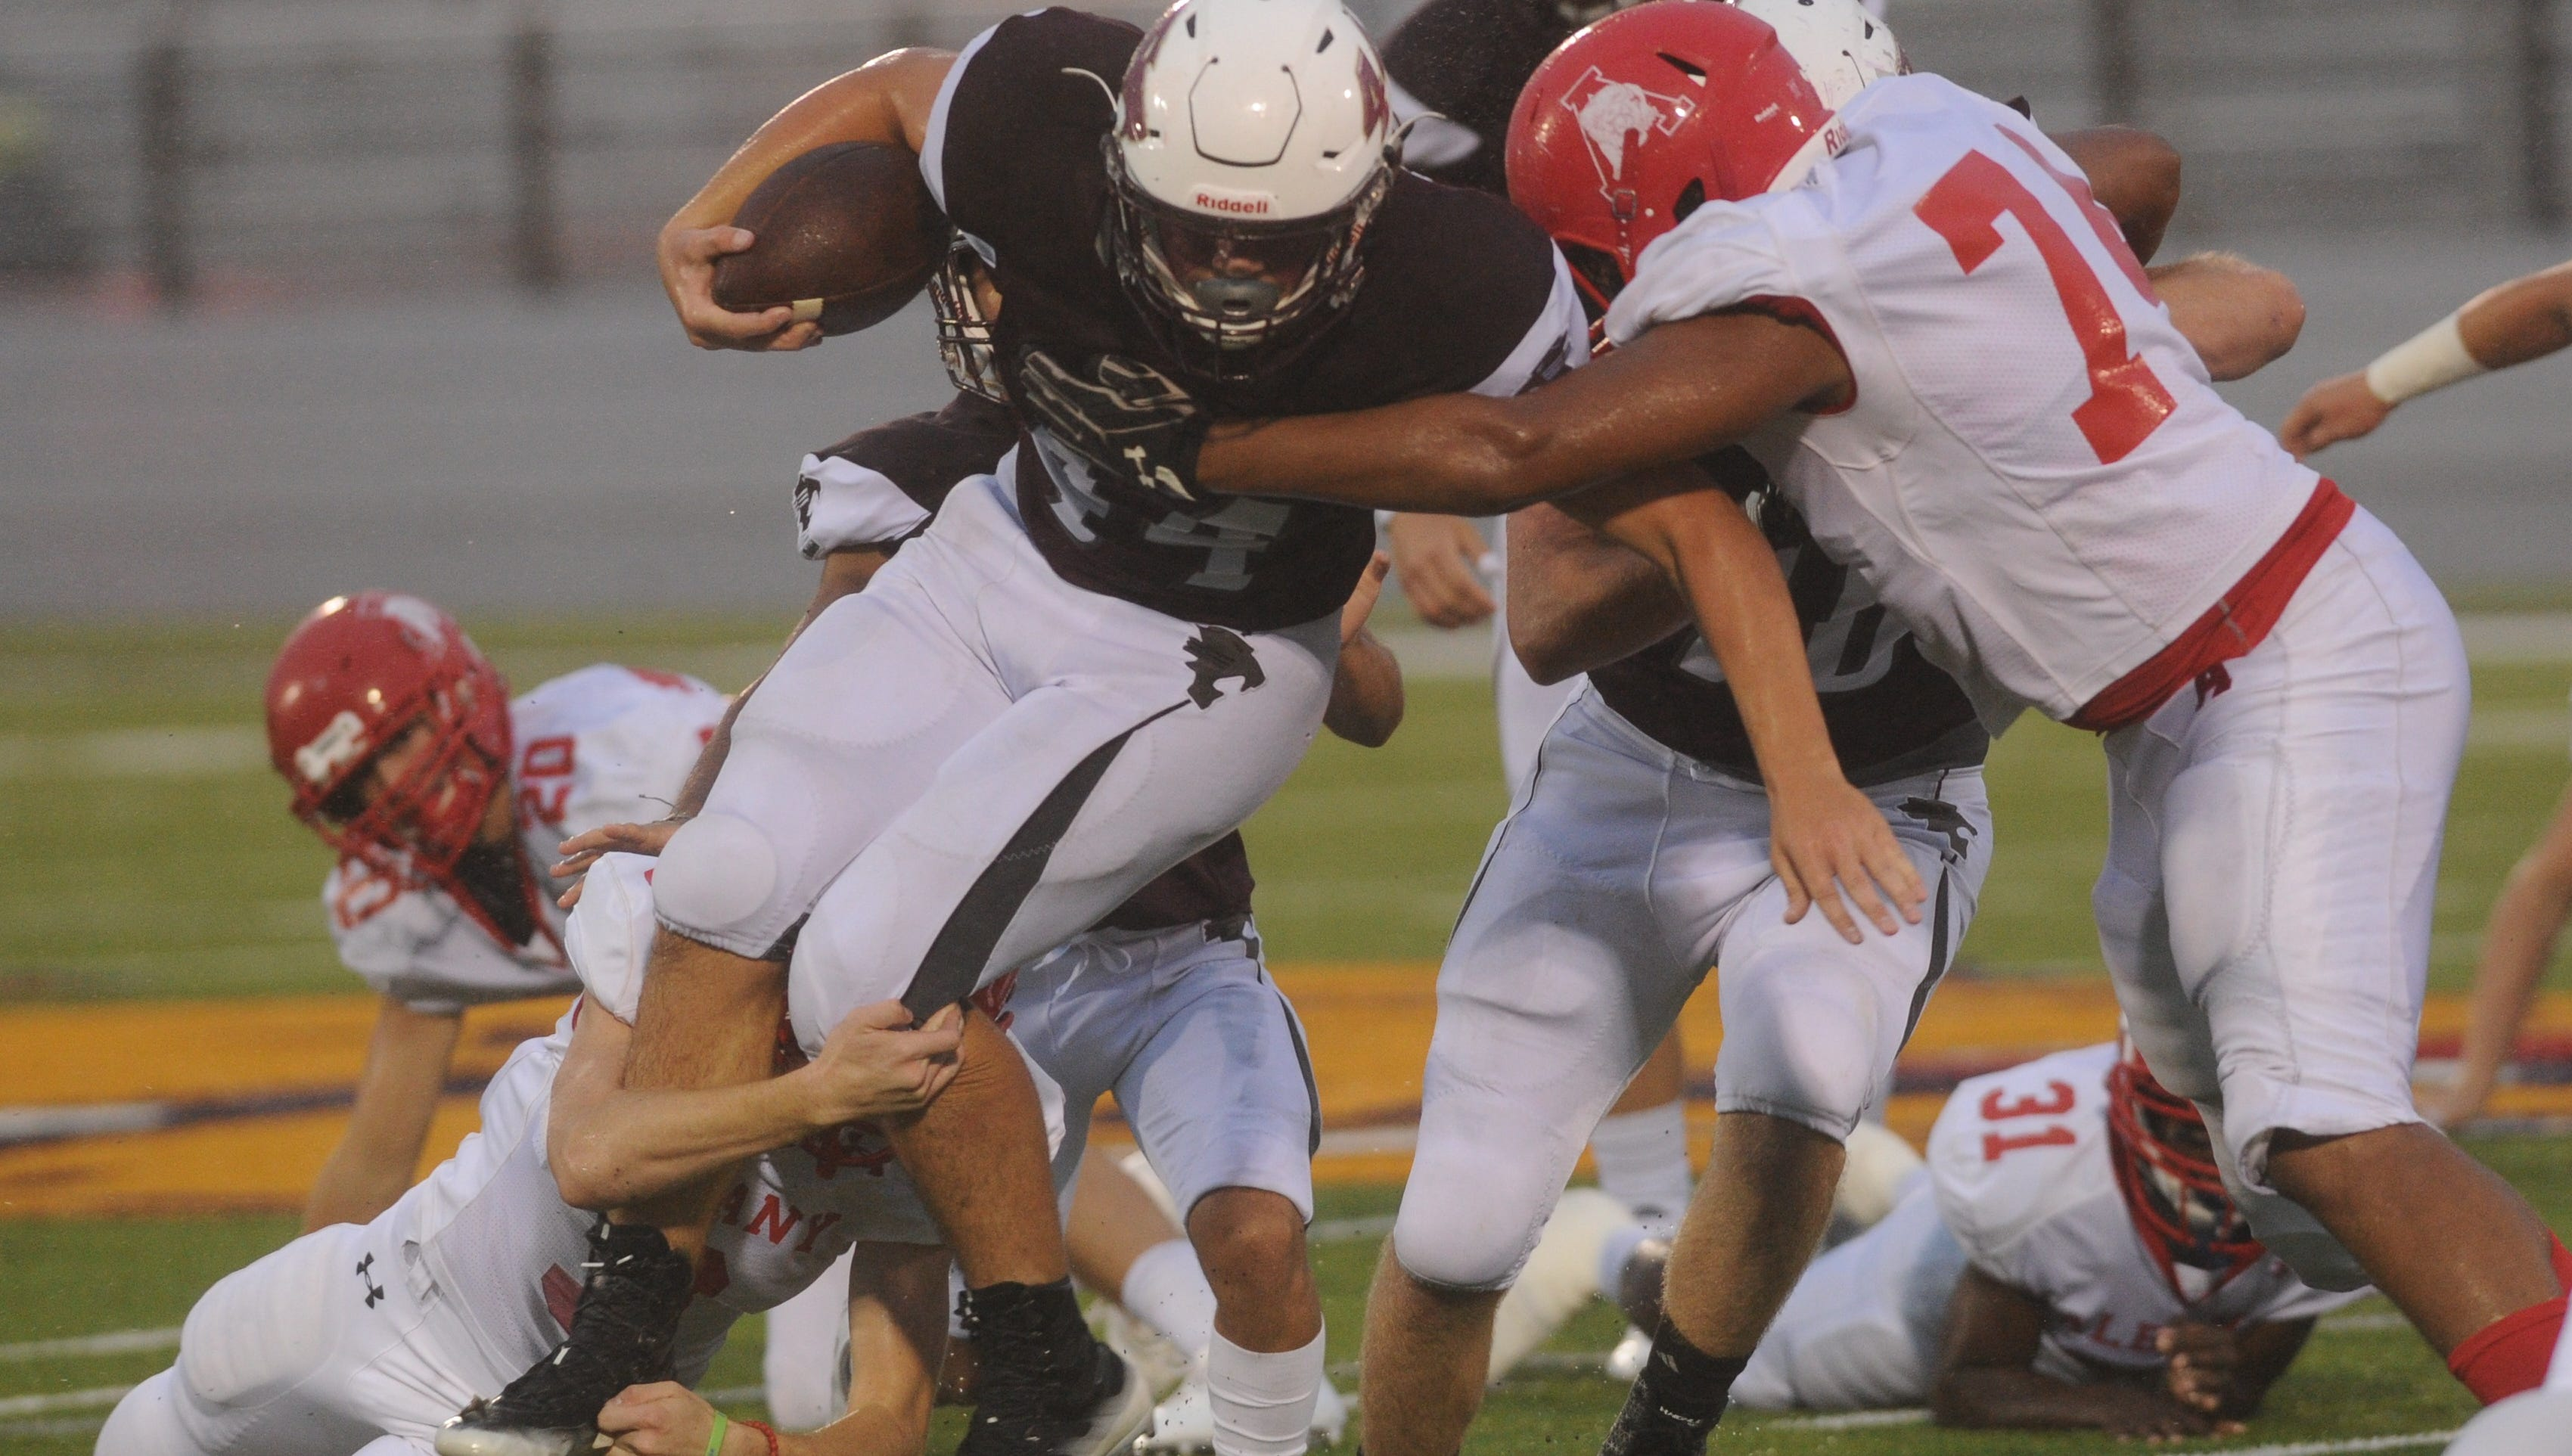 Hawley's Colton Marshall, center, carries the ball as Albany's Colby Knight, right, and another teammate try to bring Marshall down. Hawley won the game Friday, Sept. 21, 2018 at Wylie's Bulldog Stadium.